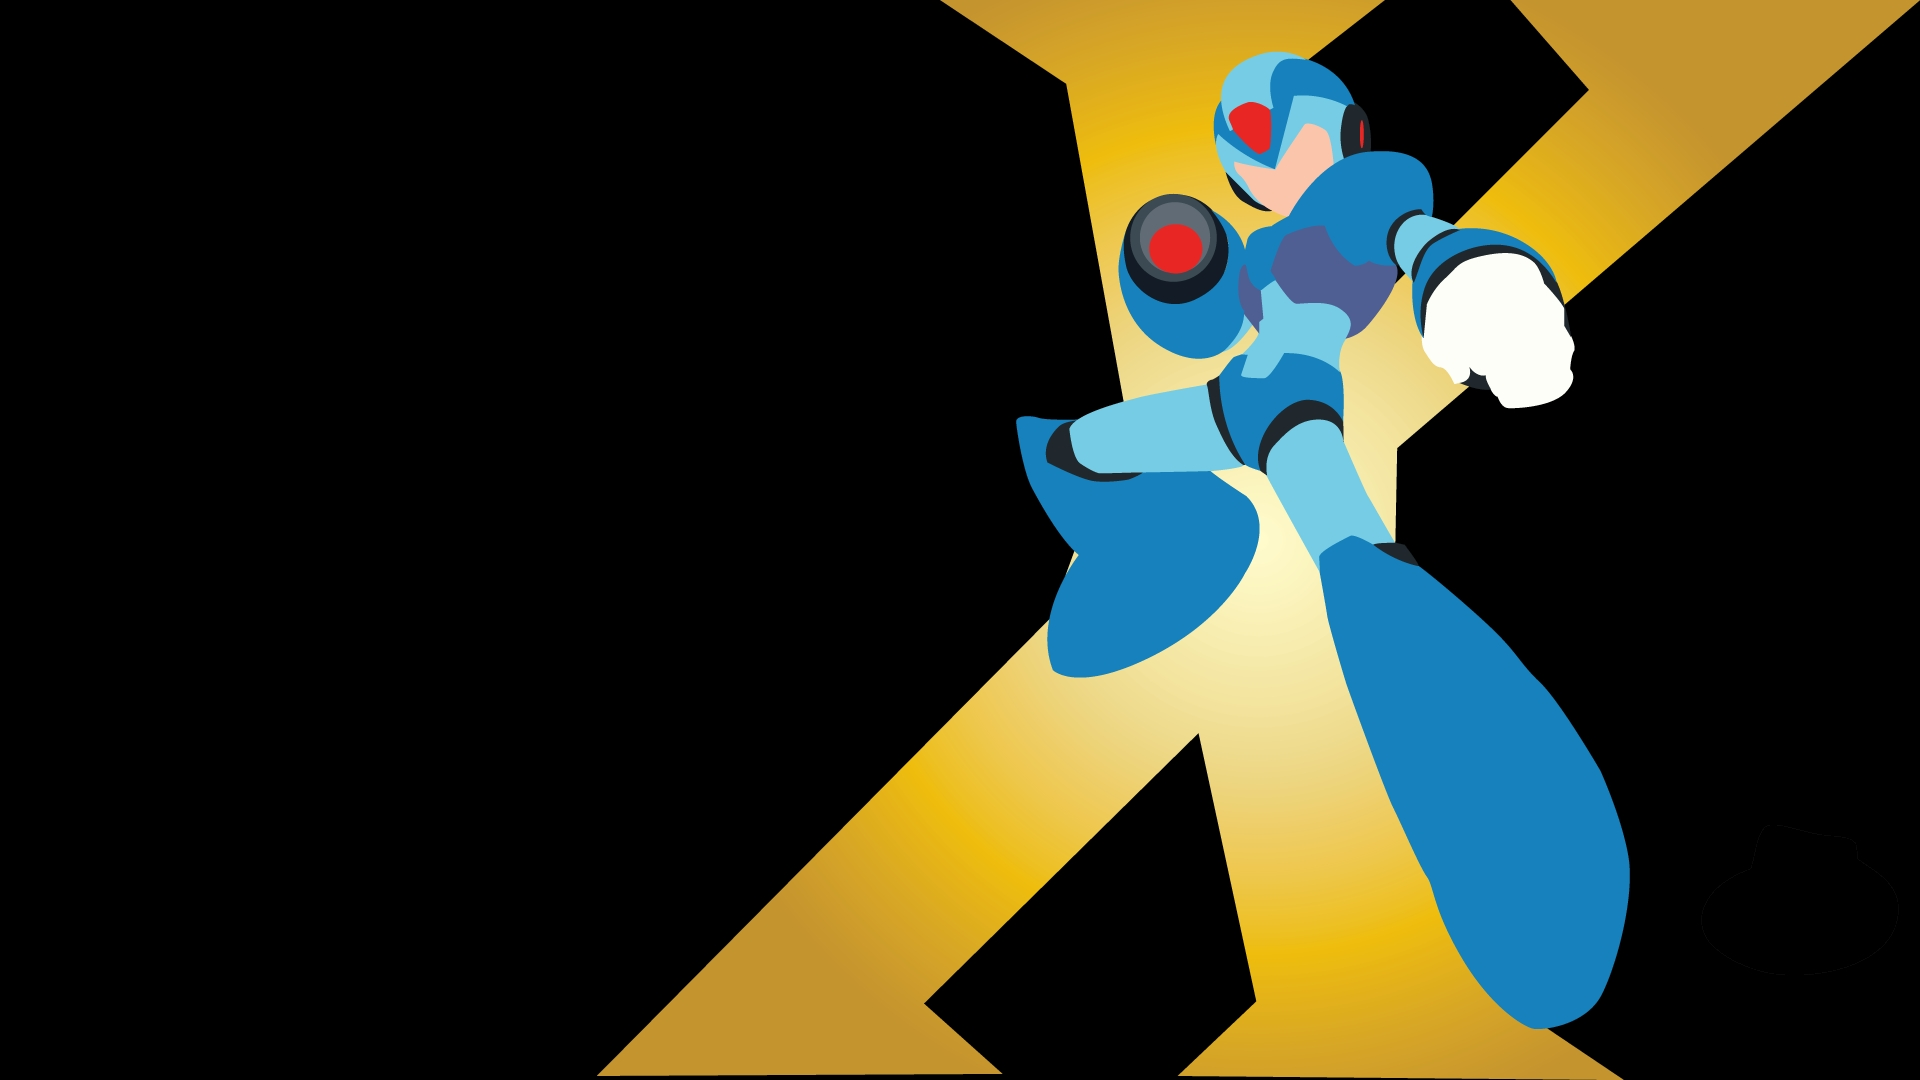 mega man x full hd wallpaper and background image | 1920x1080 | id